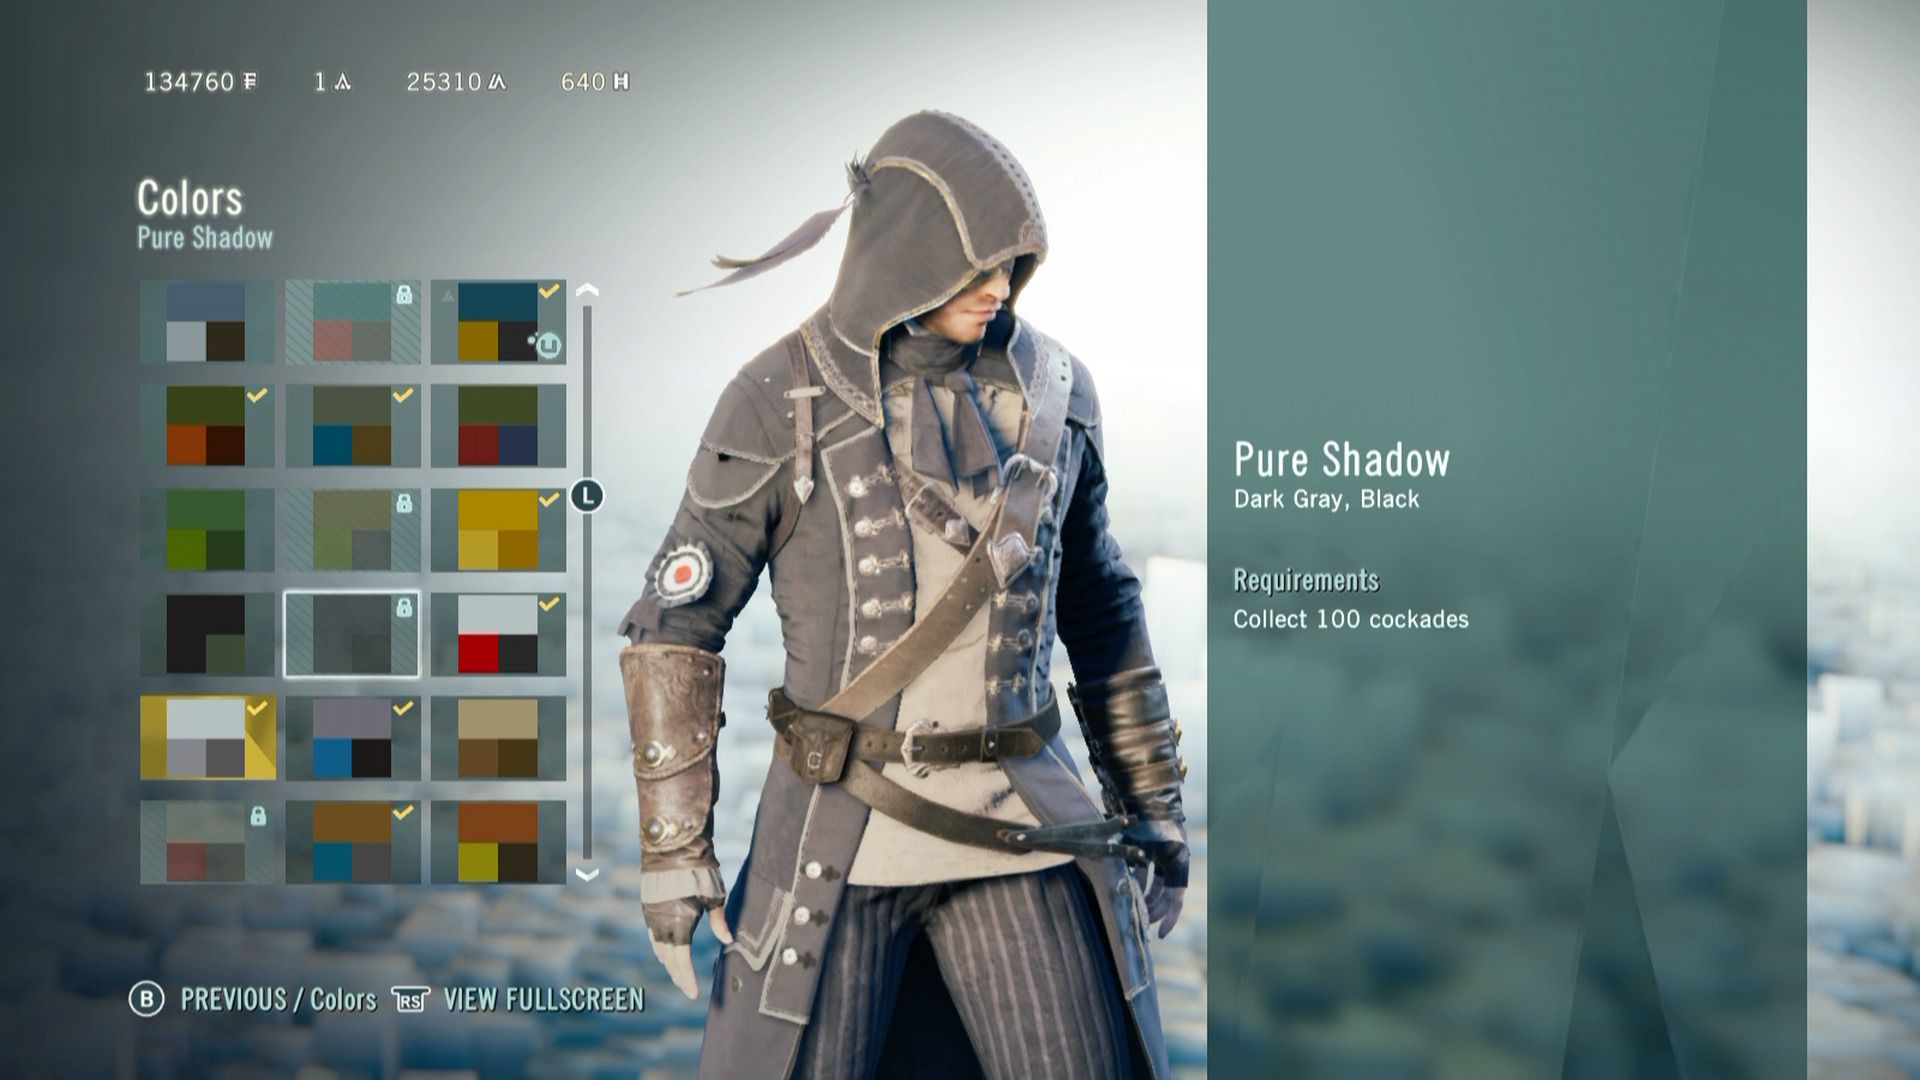 Assassin s creed unity review next available slot assassin s creed - Assassin S Creed Unity Game_ui_rpg Pinterest Assassin S Creed Unity Game Ui And Rpg